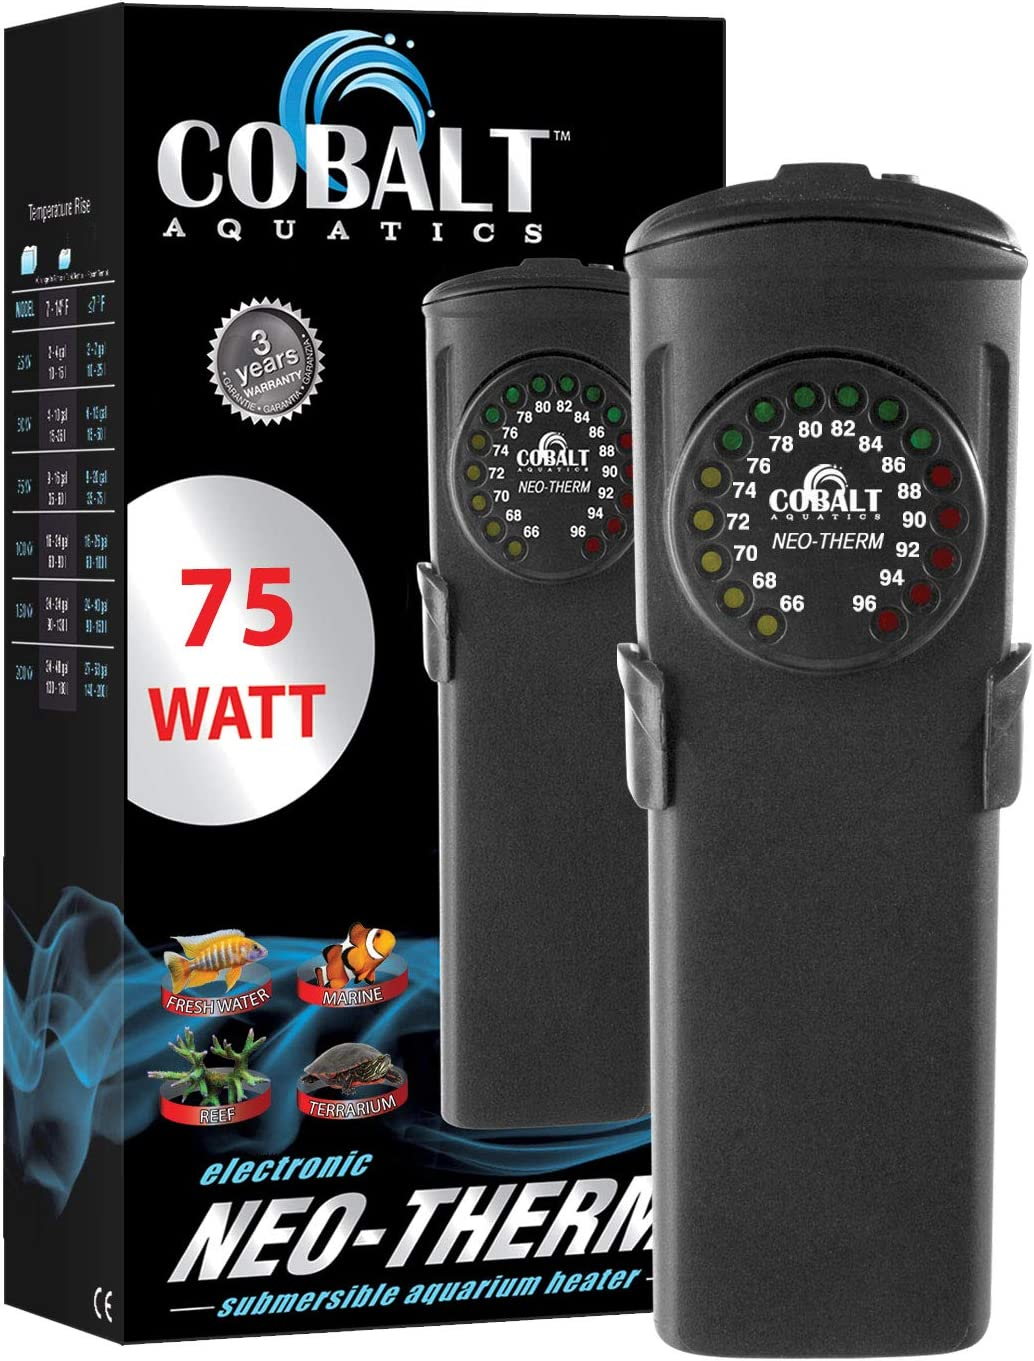 Cobalt Aquatics Neo-Therm Aquarium Heater